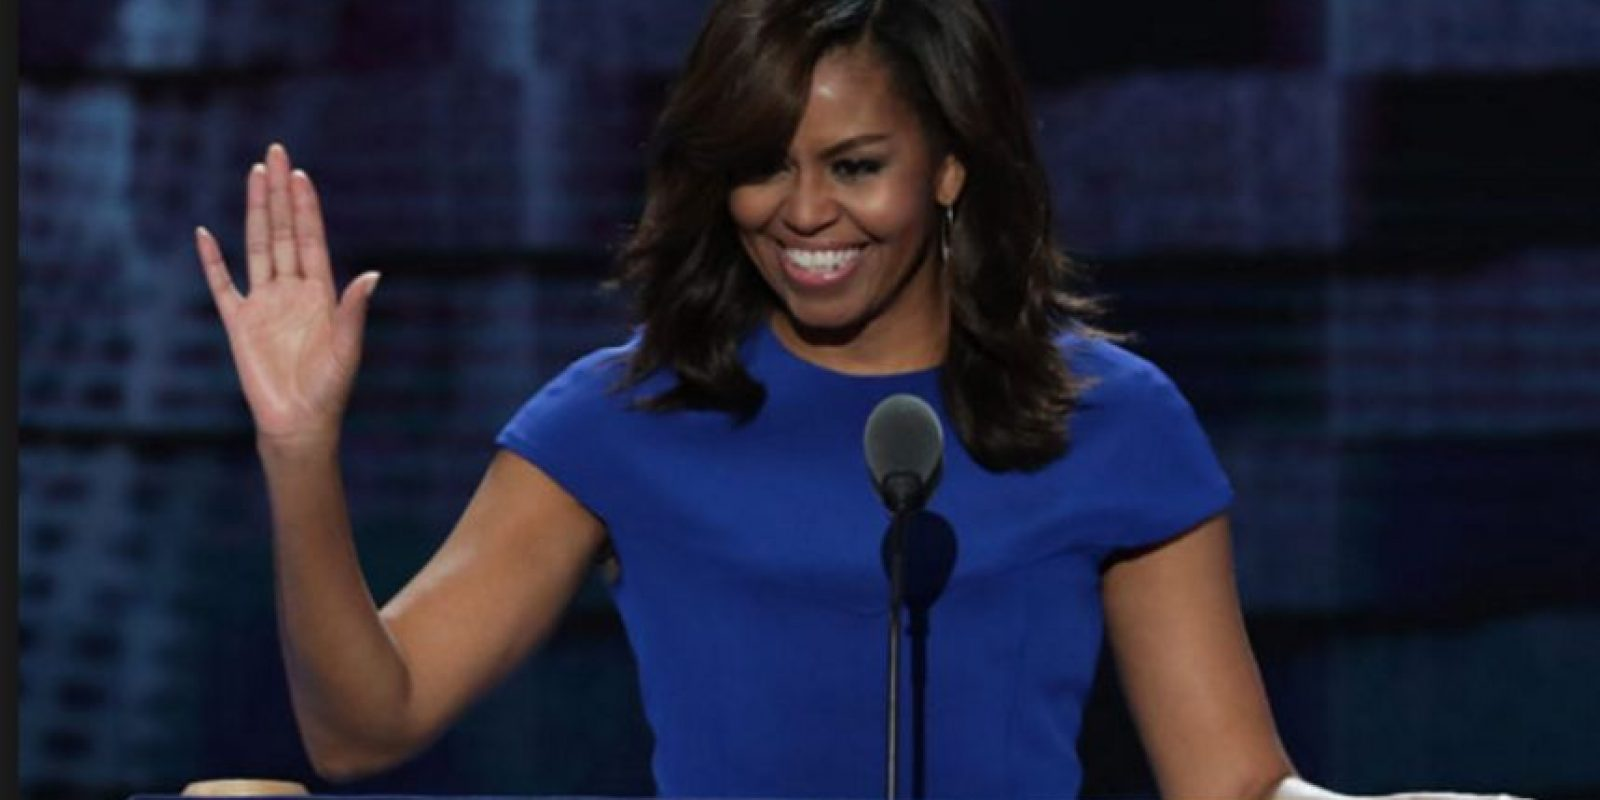 Michelle Obama dio un inspirador discurso.  Foto: Getty Images